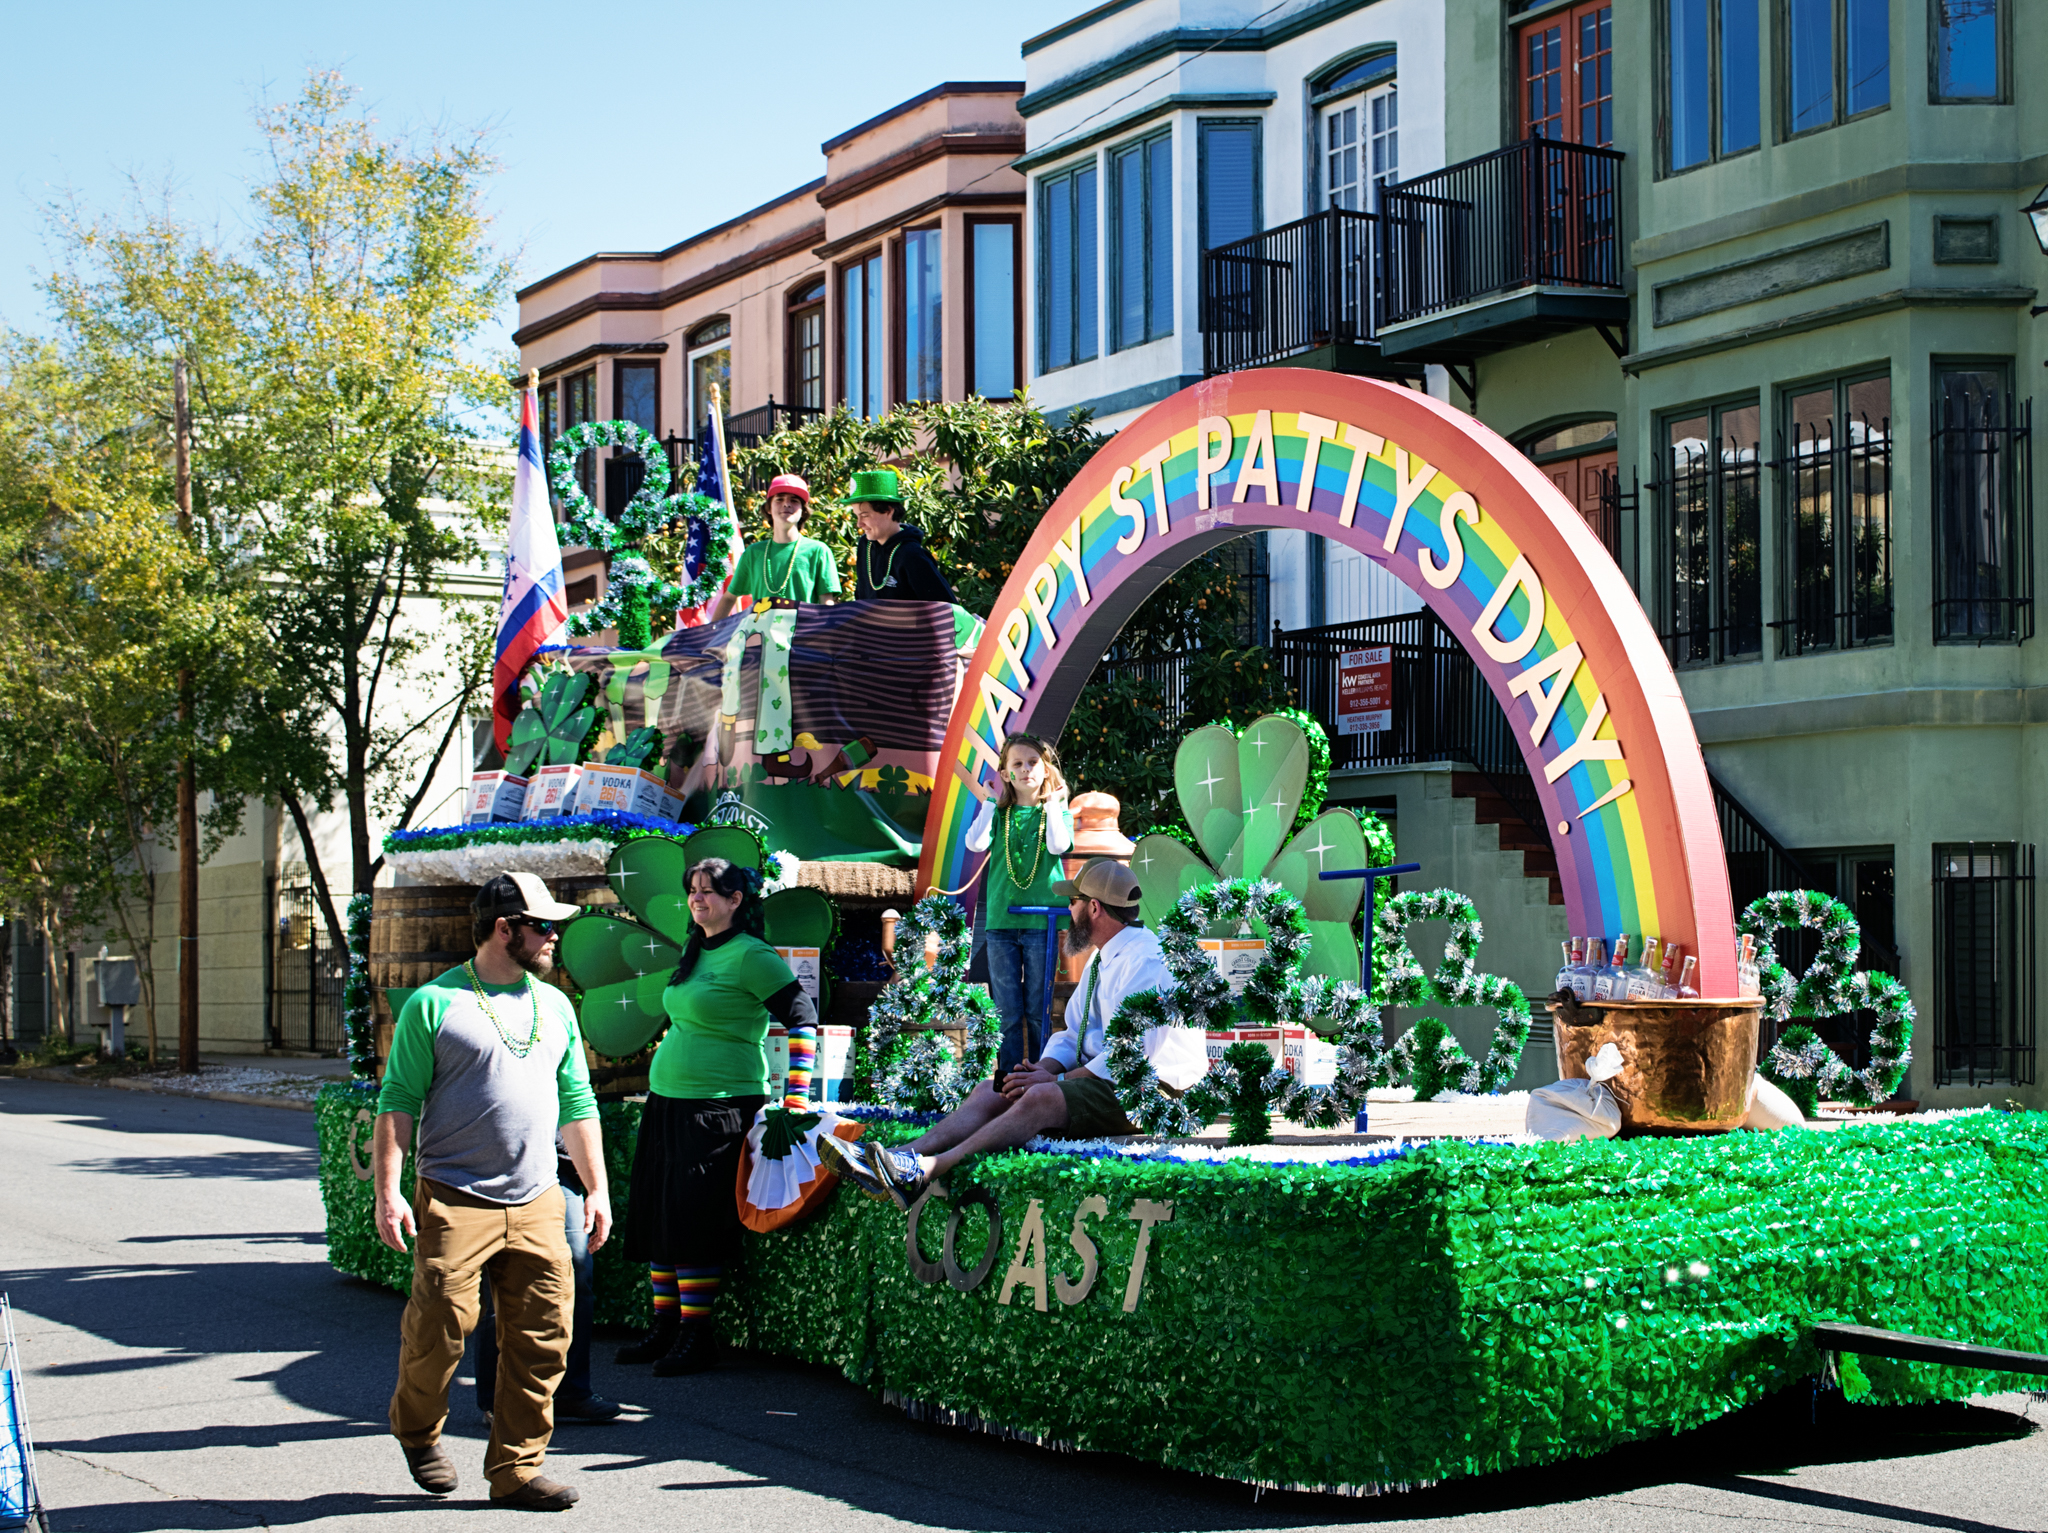 17-St Patricks Day 2017.jpg